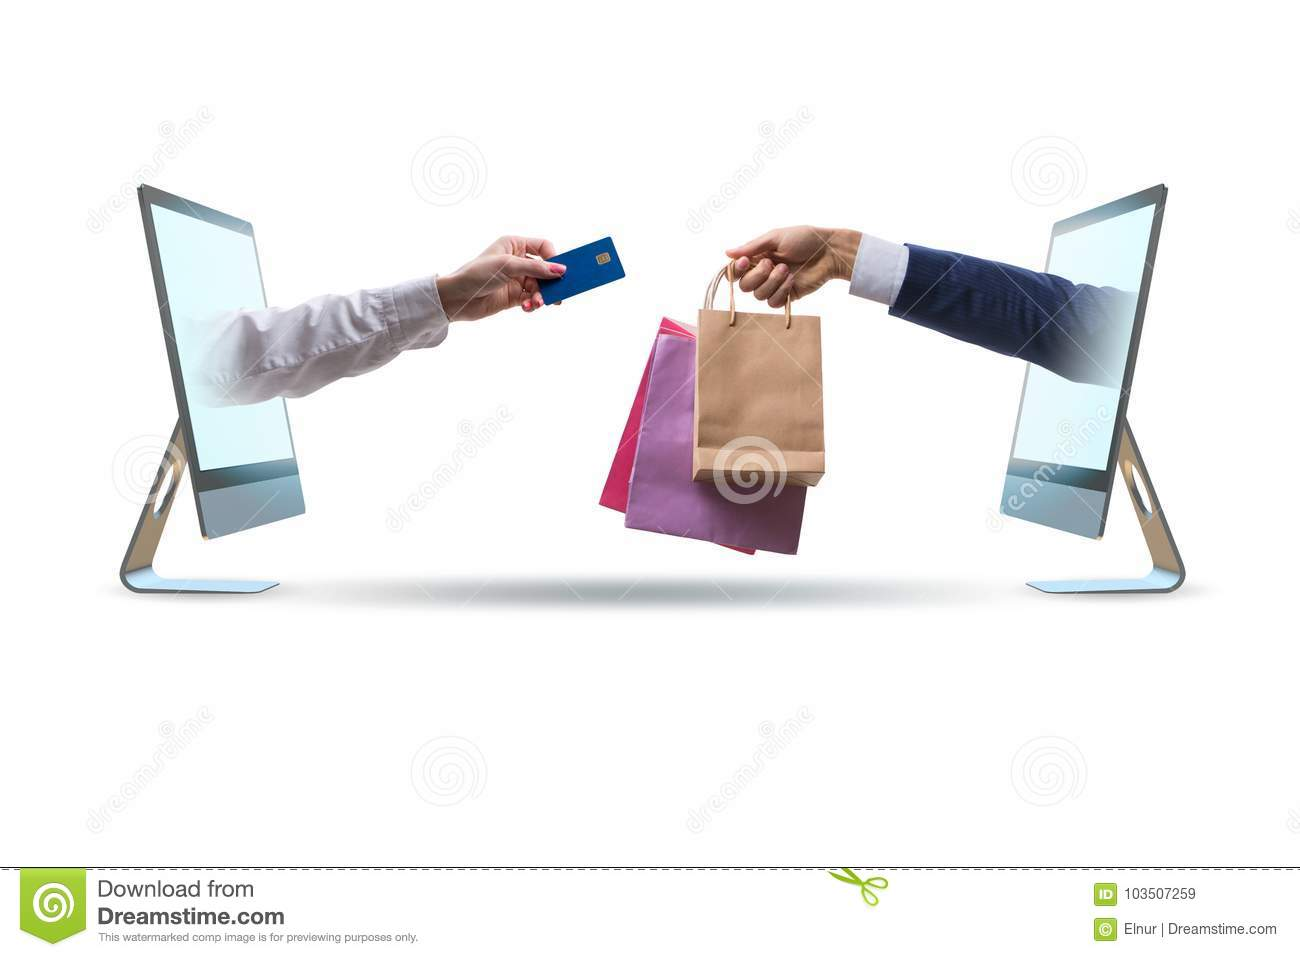 The online shopping through buying from internet